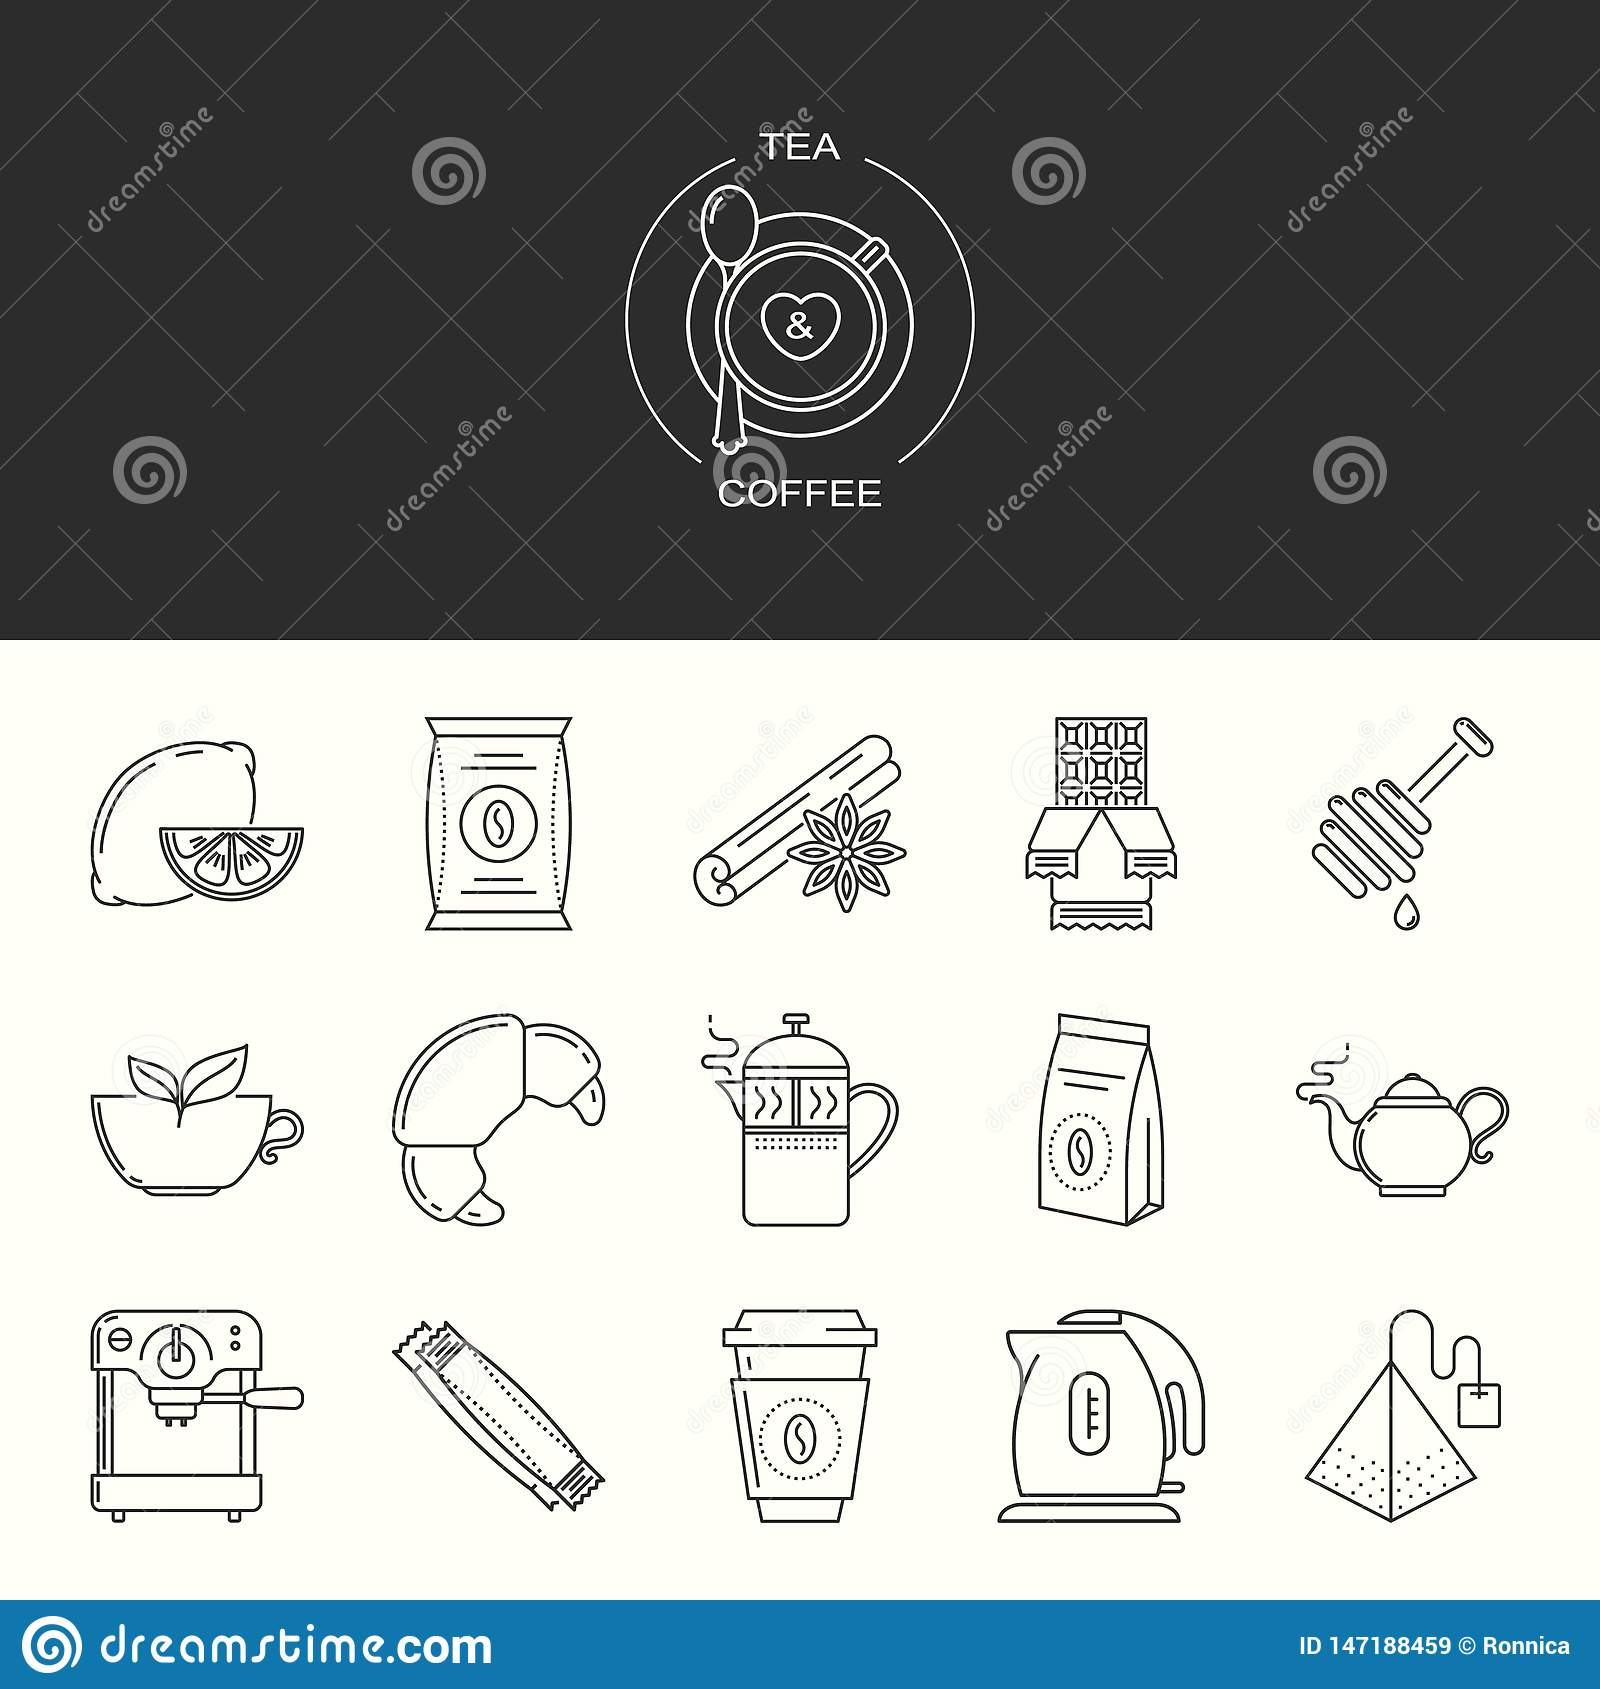 Collection of tea and coffee vector icons